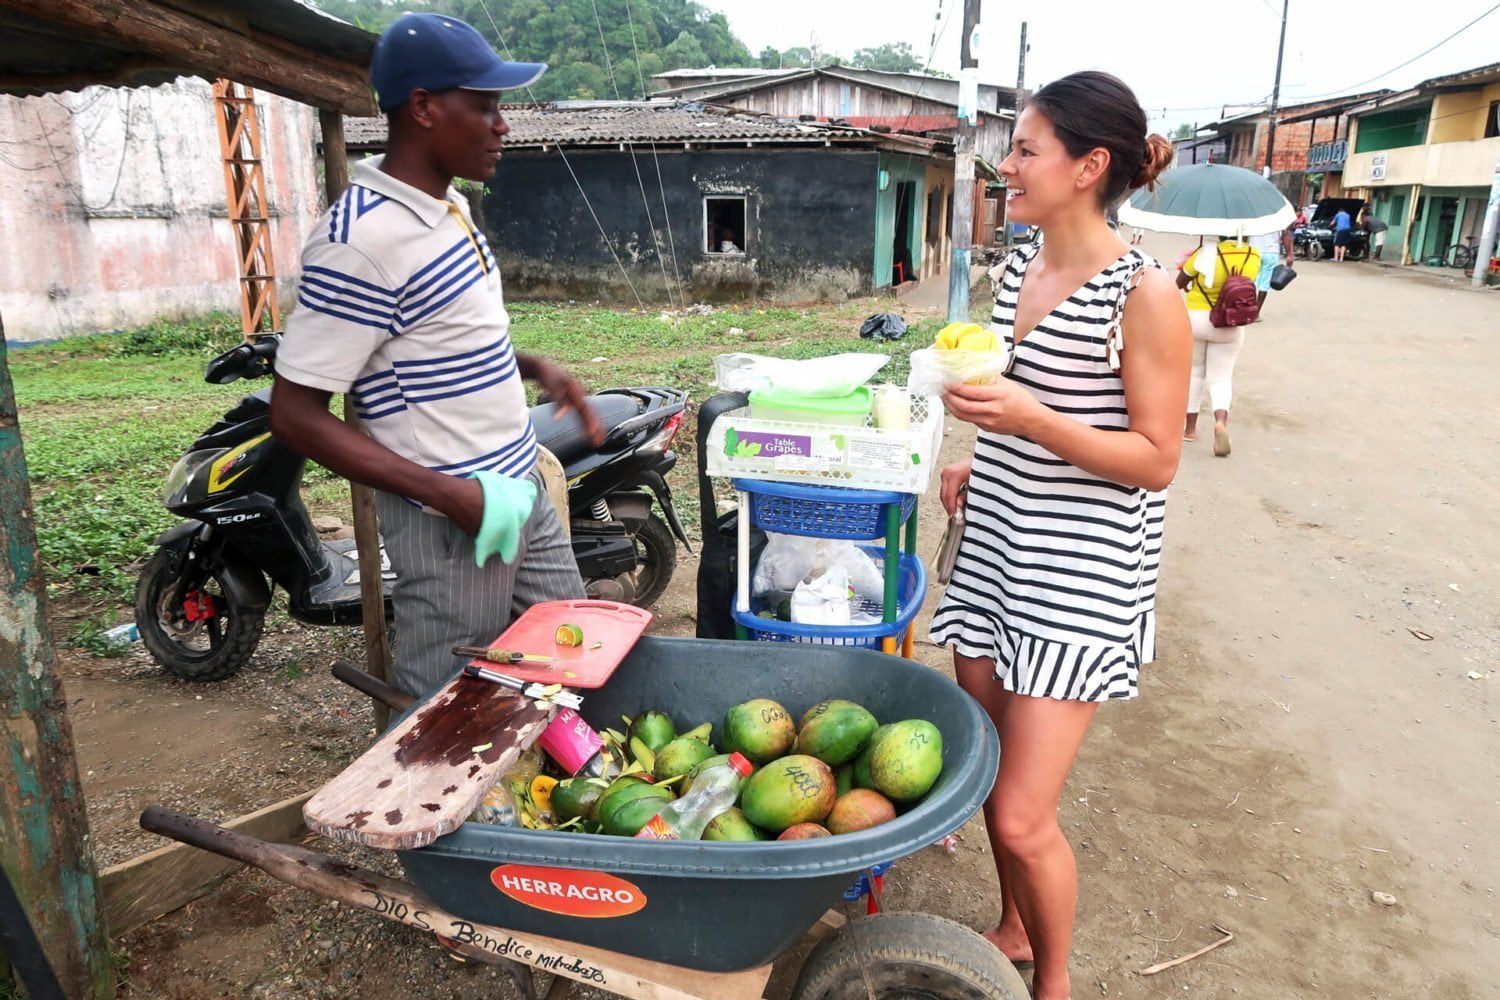 kim buying mango in el valle town bahia solano on colombia's pacific coast